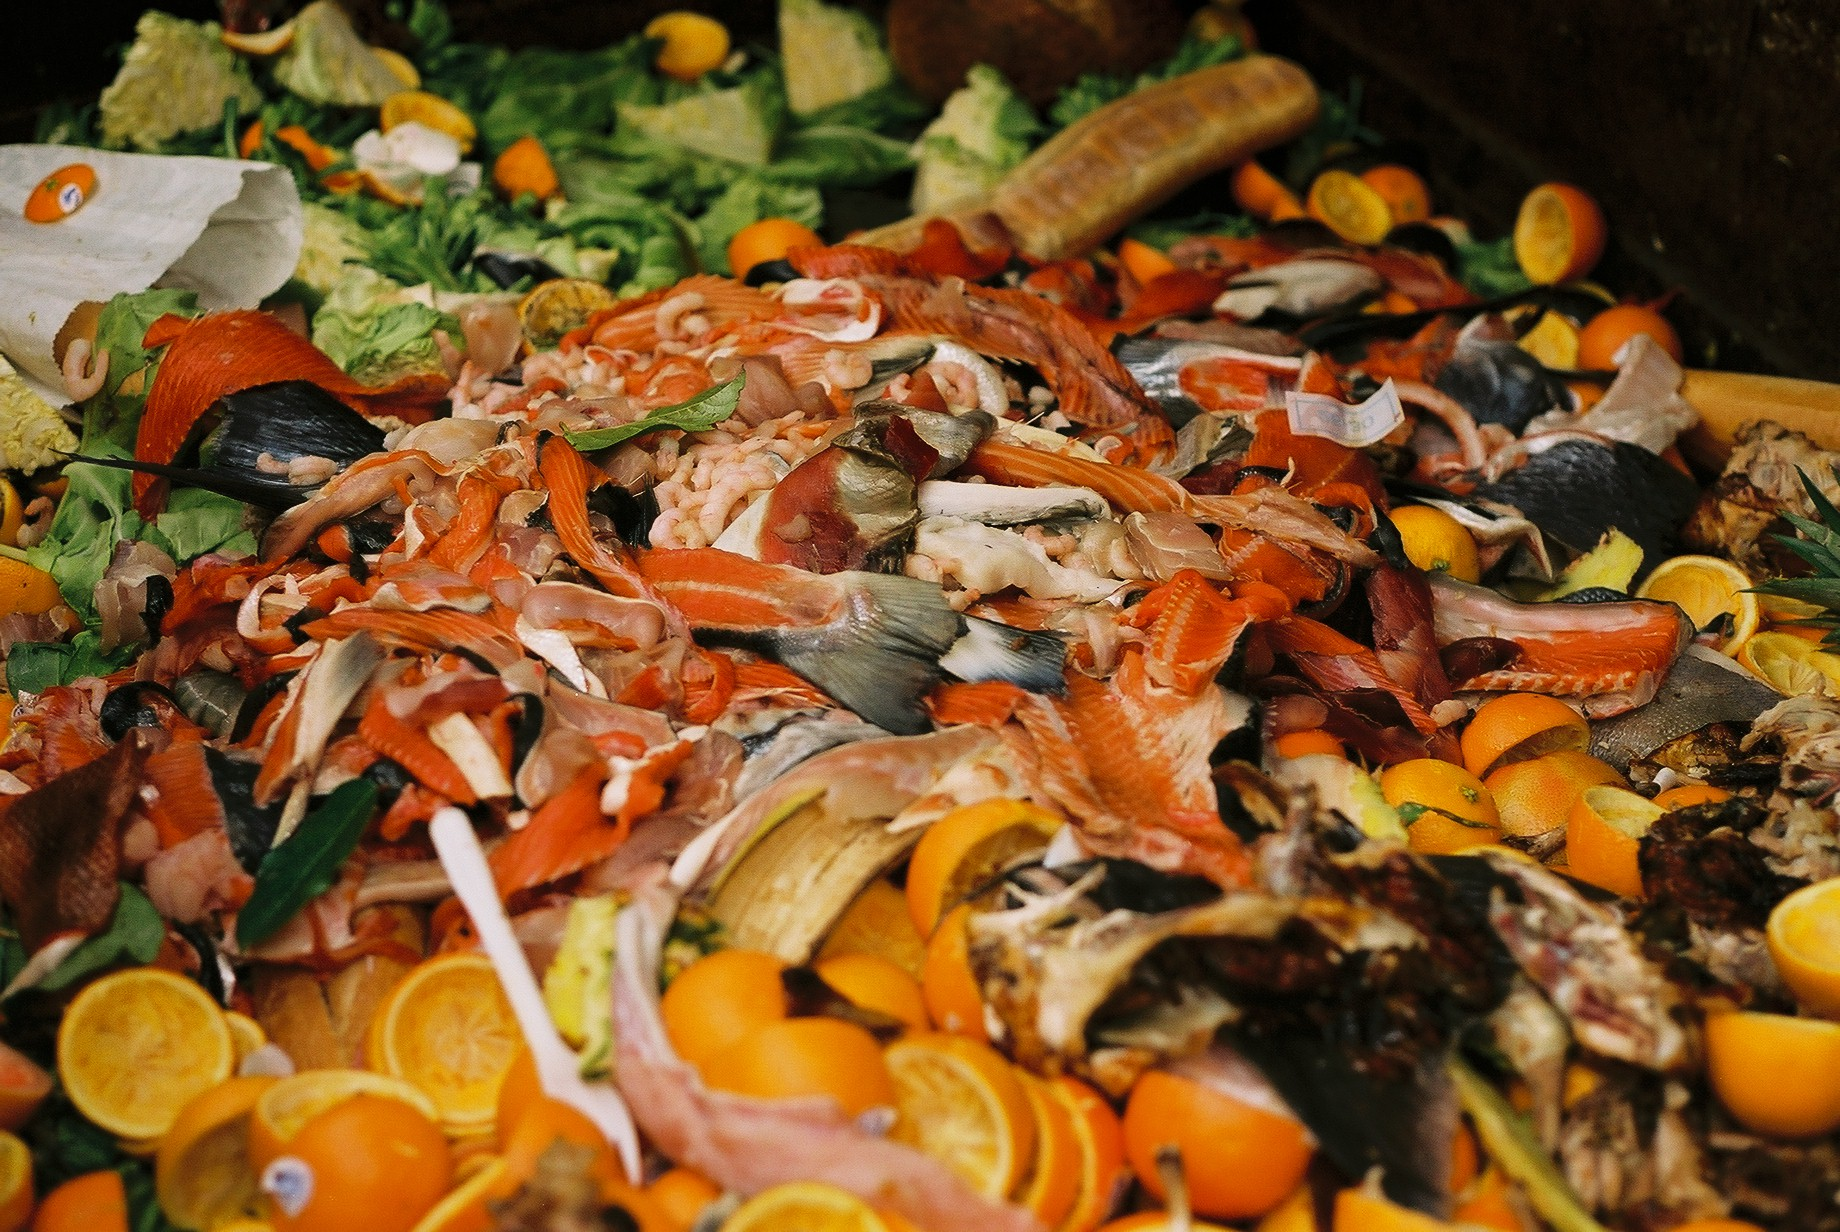 Models for Reducing Food Waste